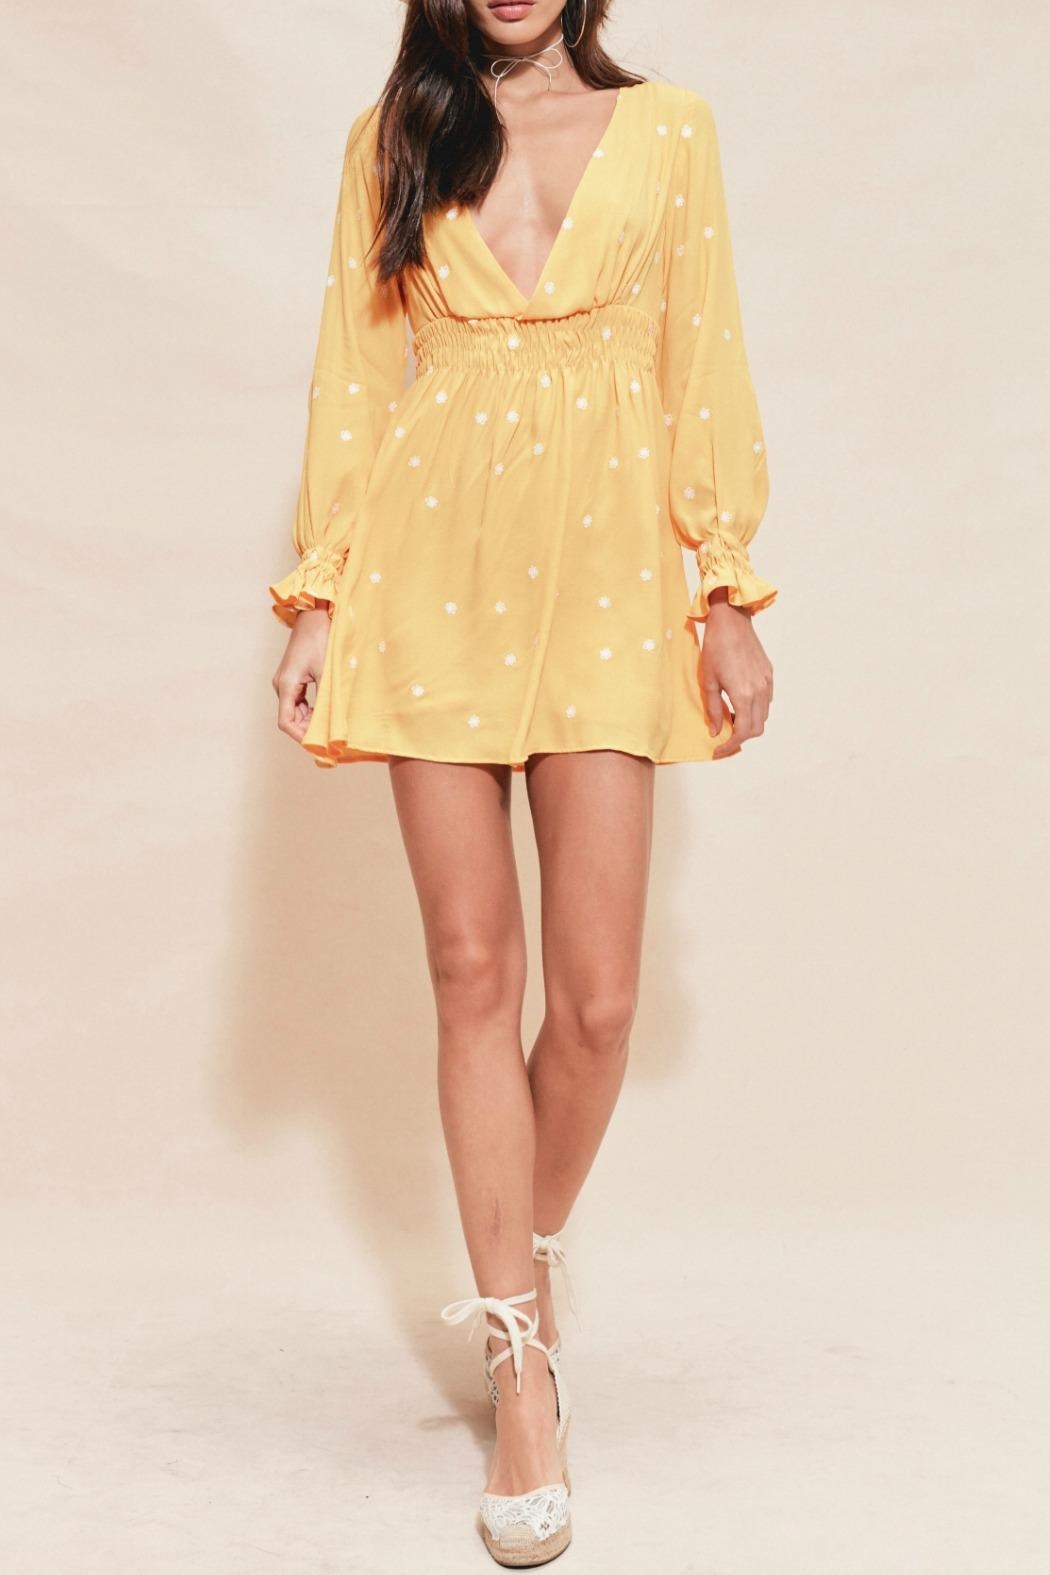 FOR LOVE & LEMONS Chiquita Embroidered Dress - Front Full Image